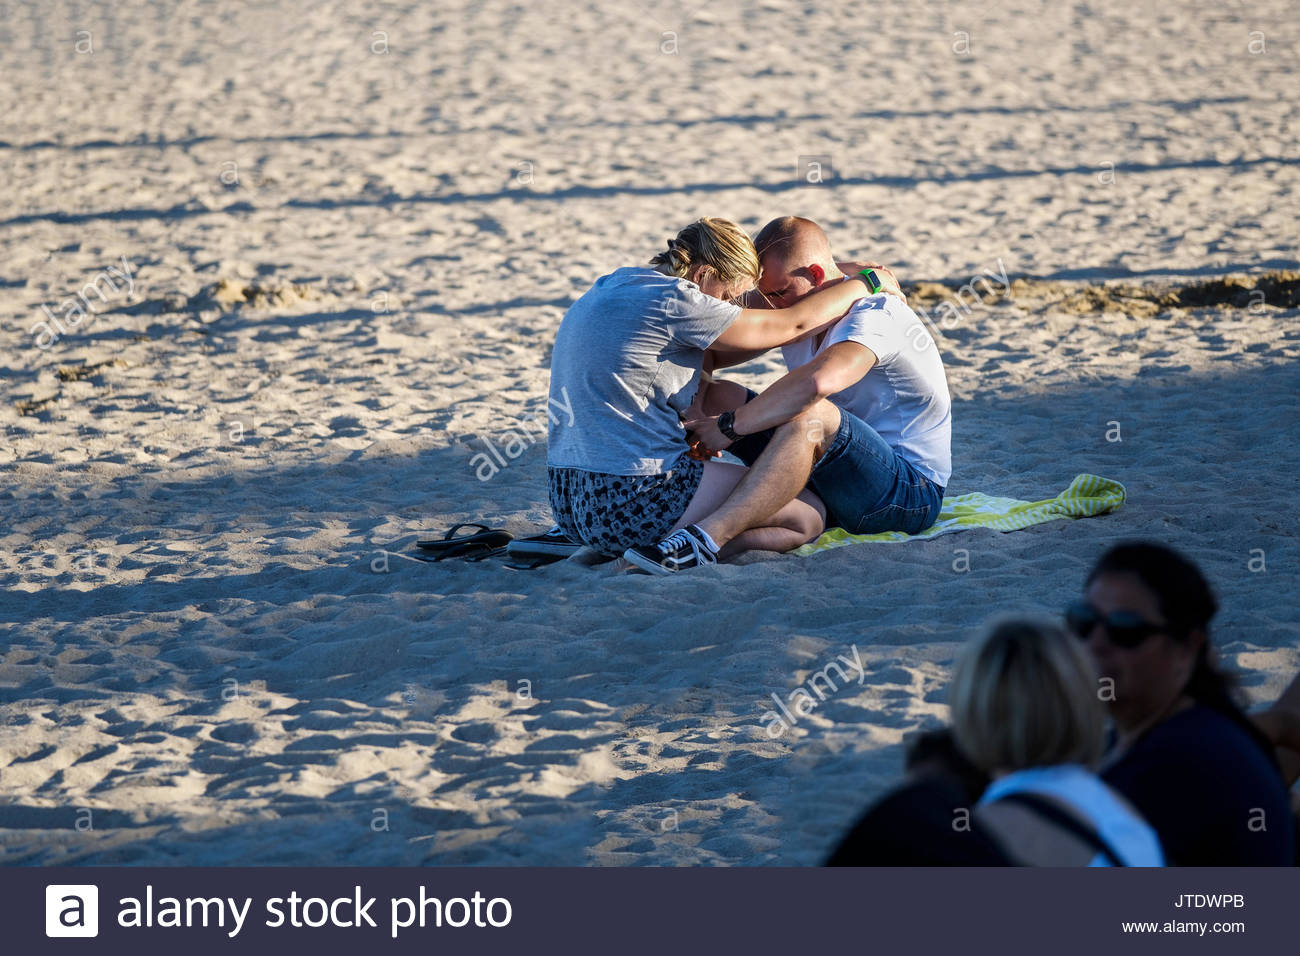 A woman consoling and offering sympathy o an upset emotional man and cuddled together on a beach - Stock Image